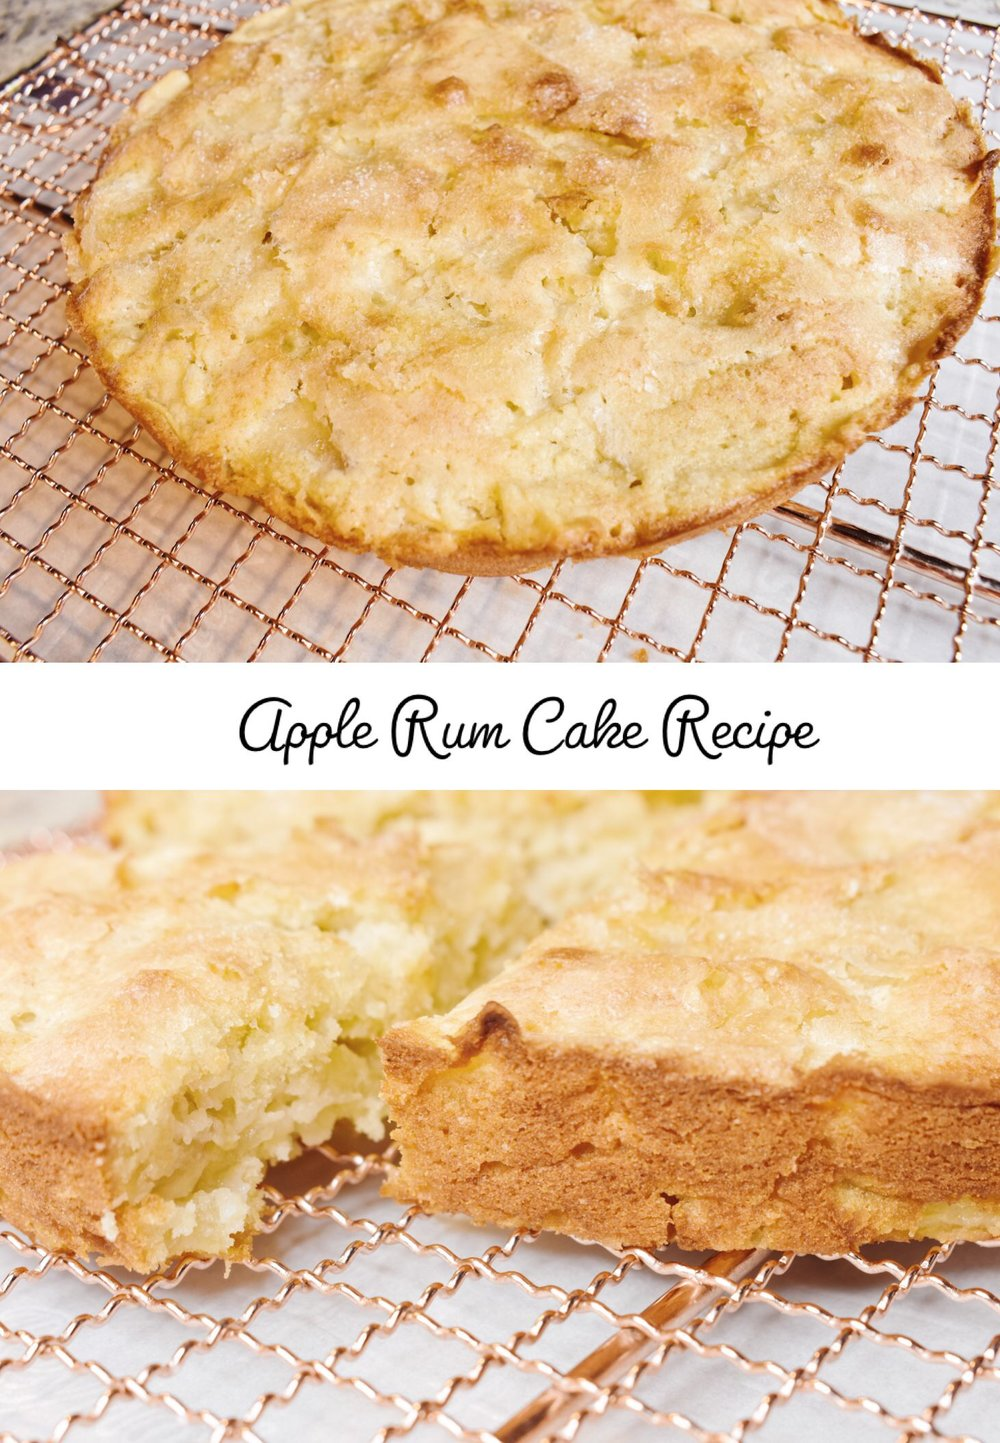 Apple Rum Cake Recipe